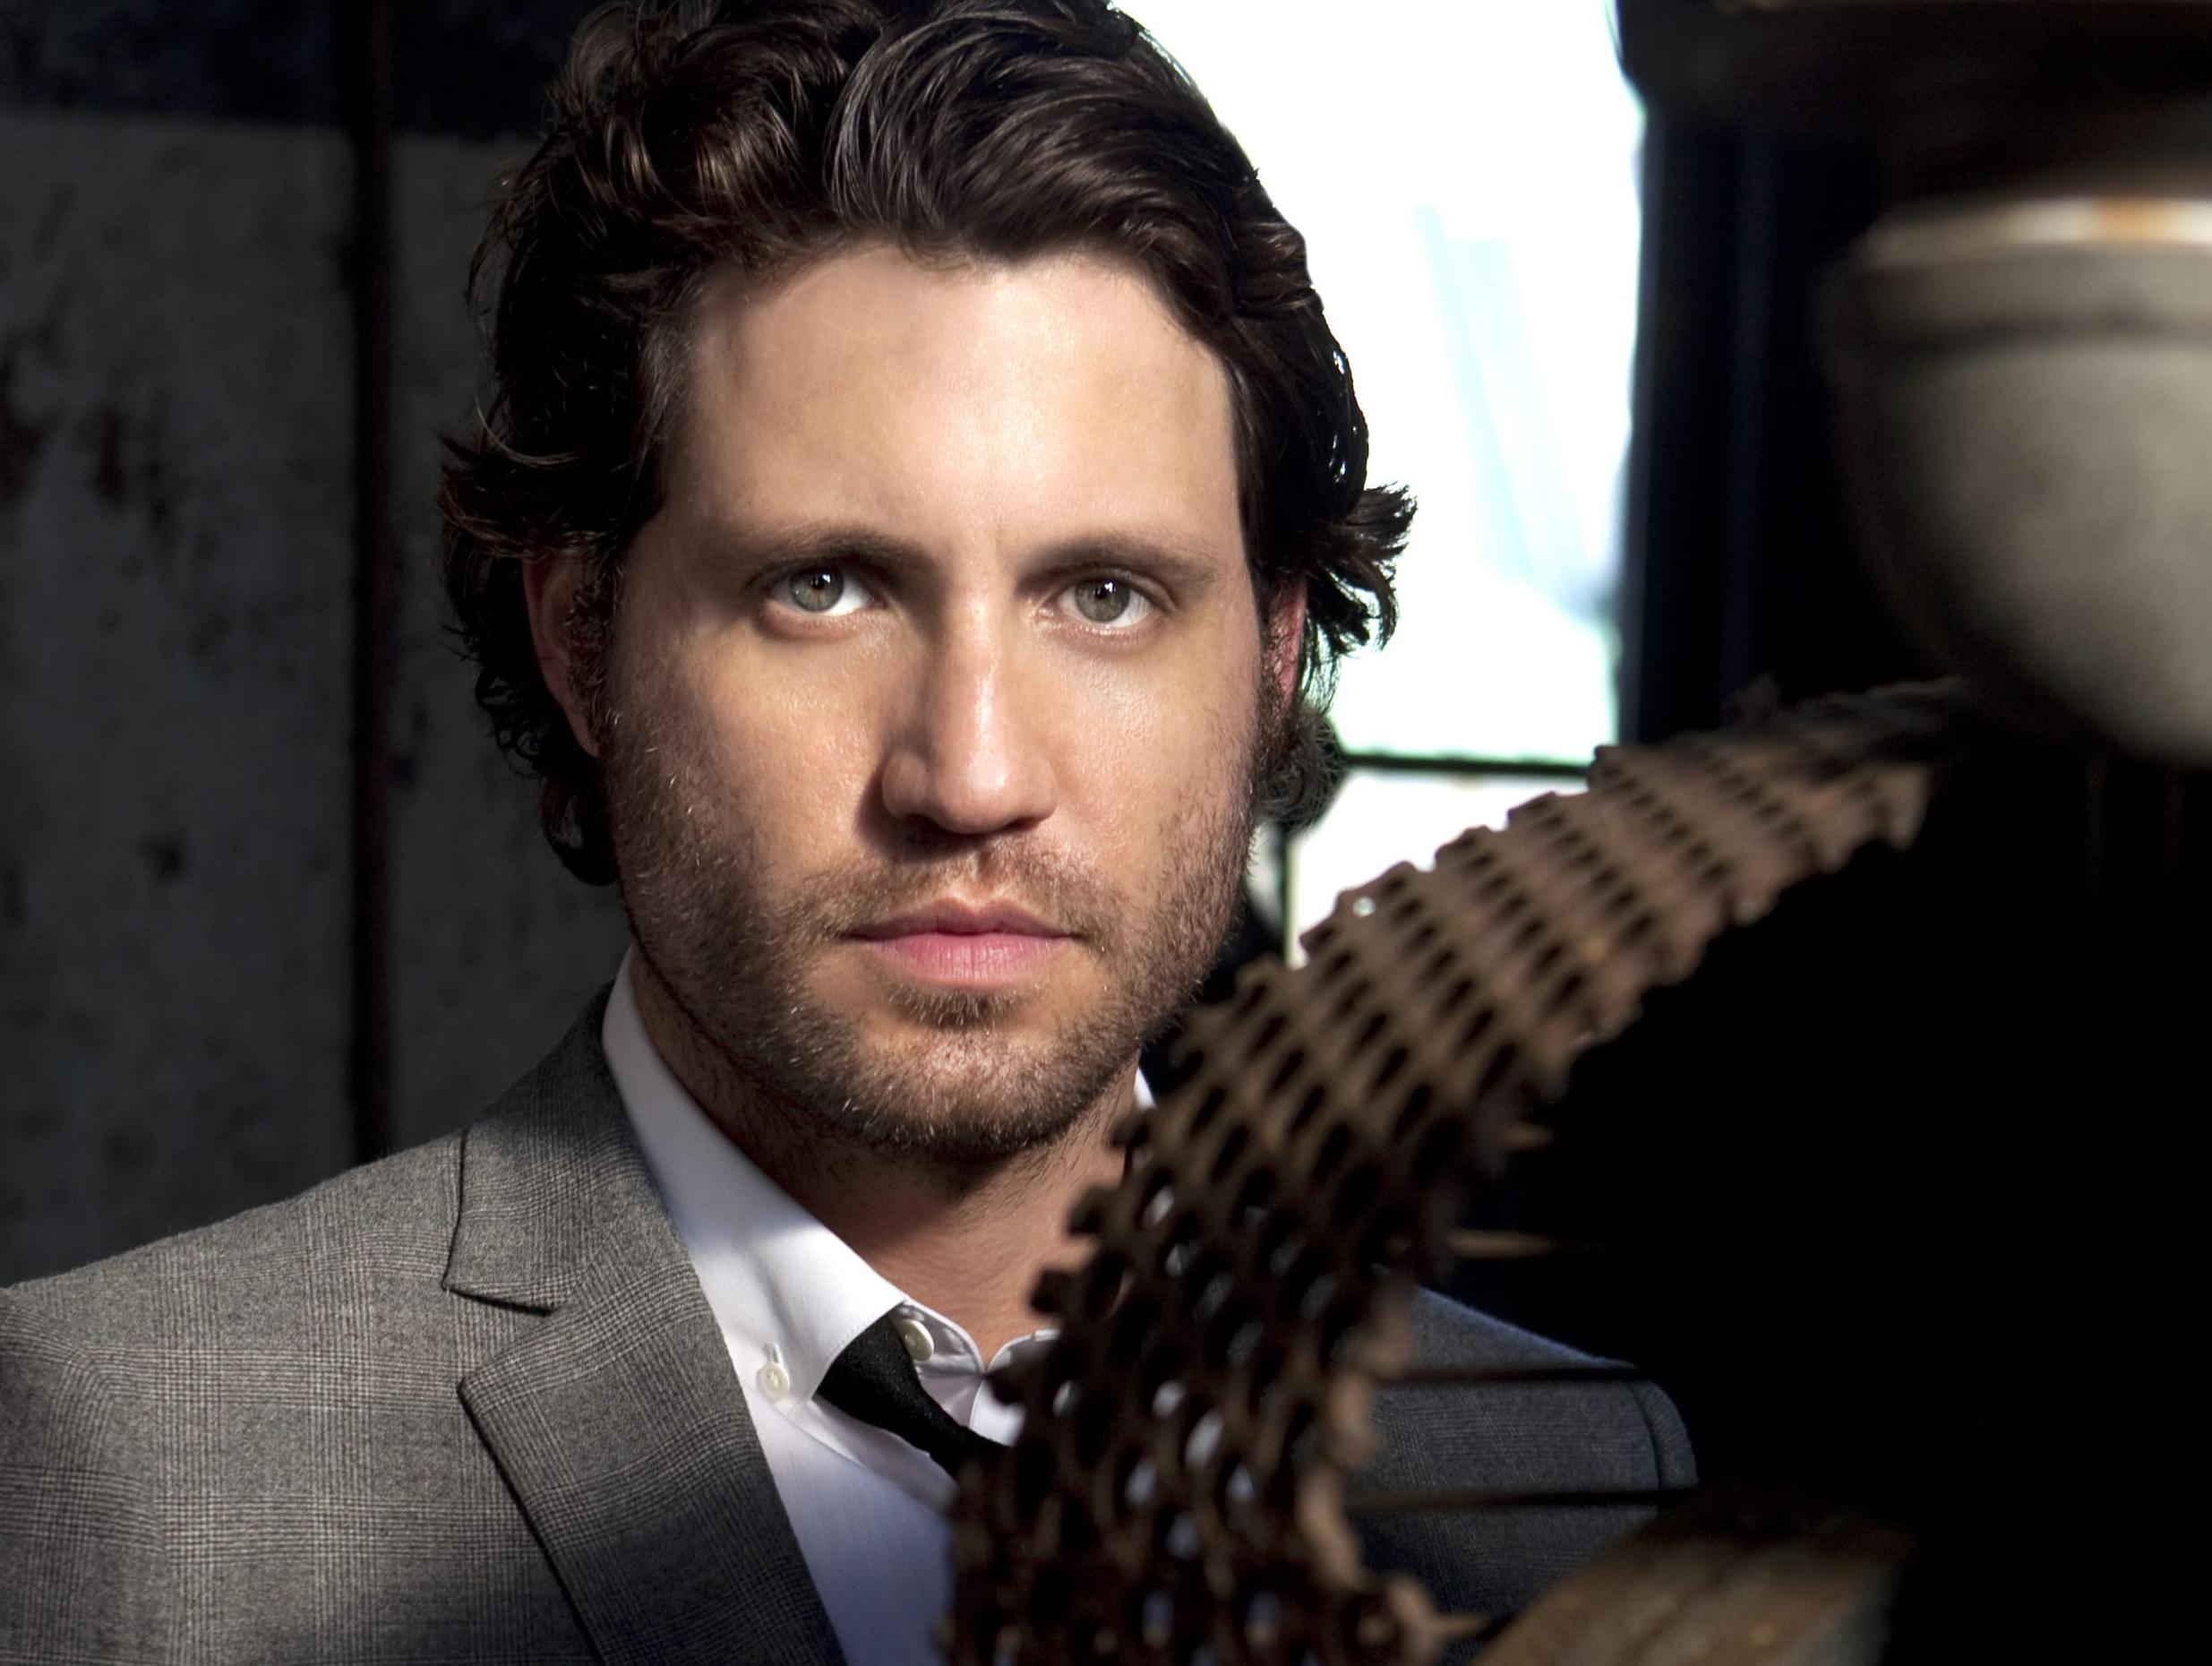 Edgar Ramirez photo #611685